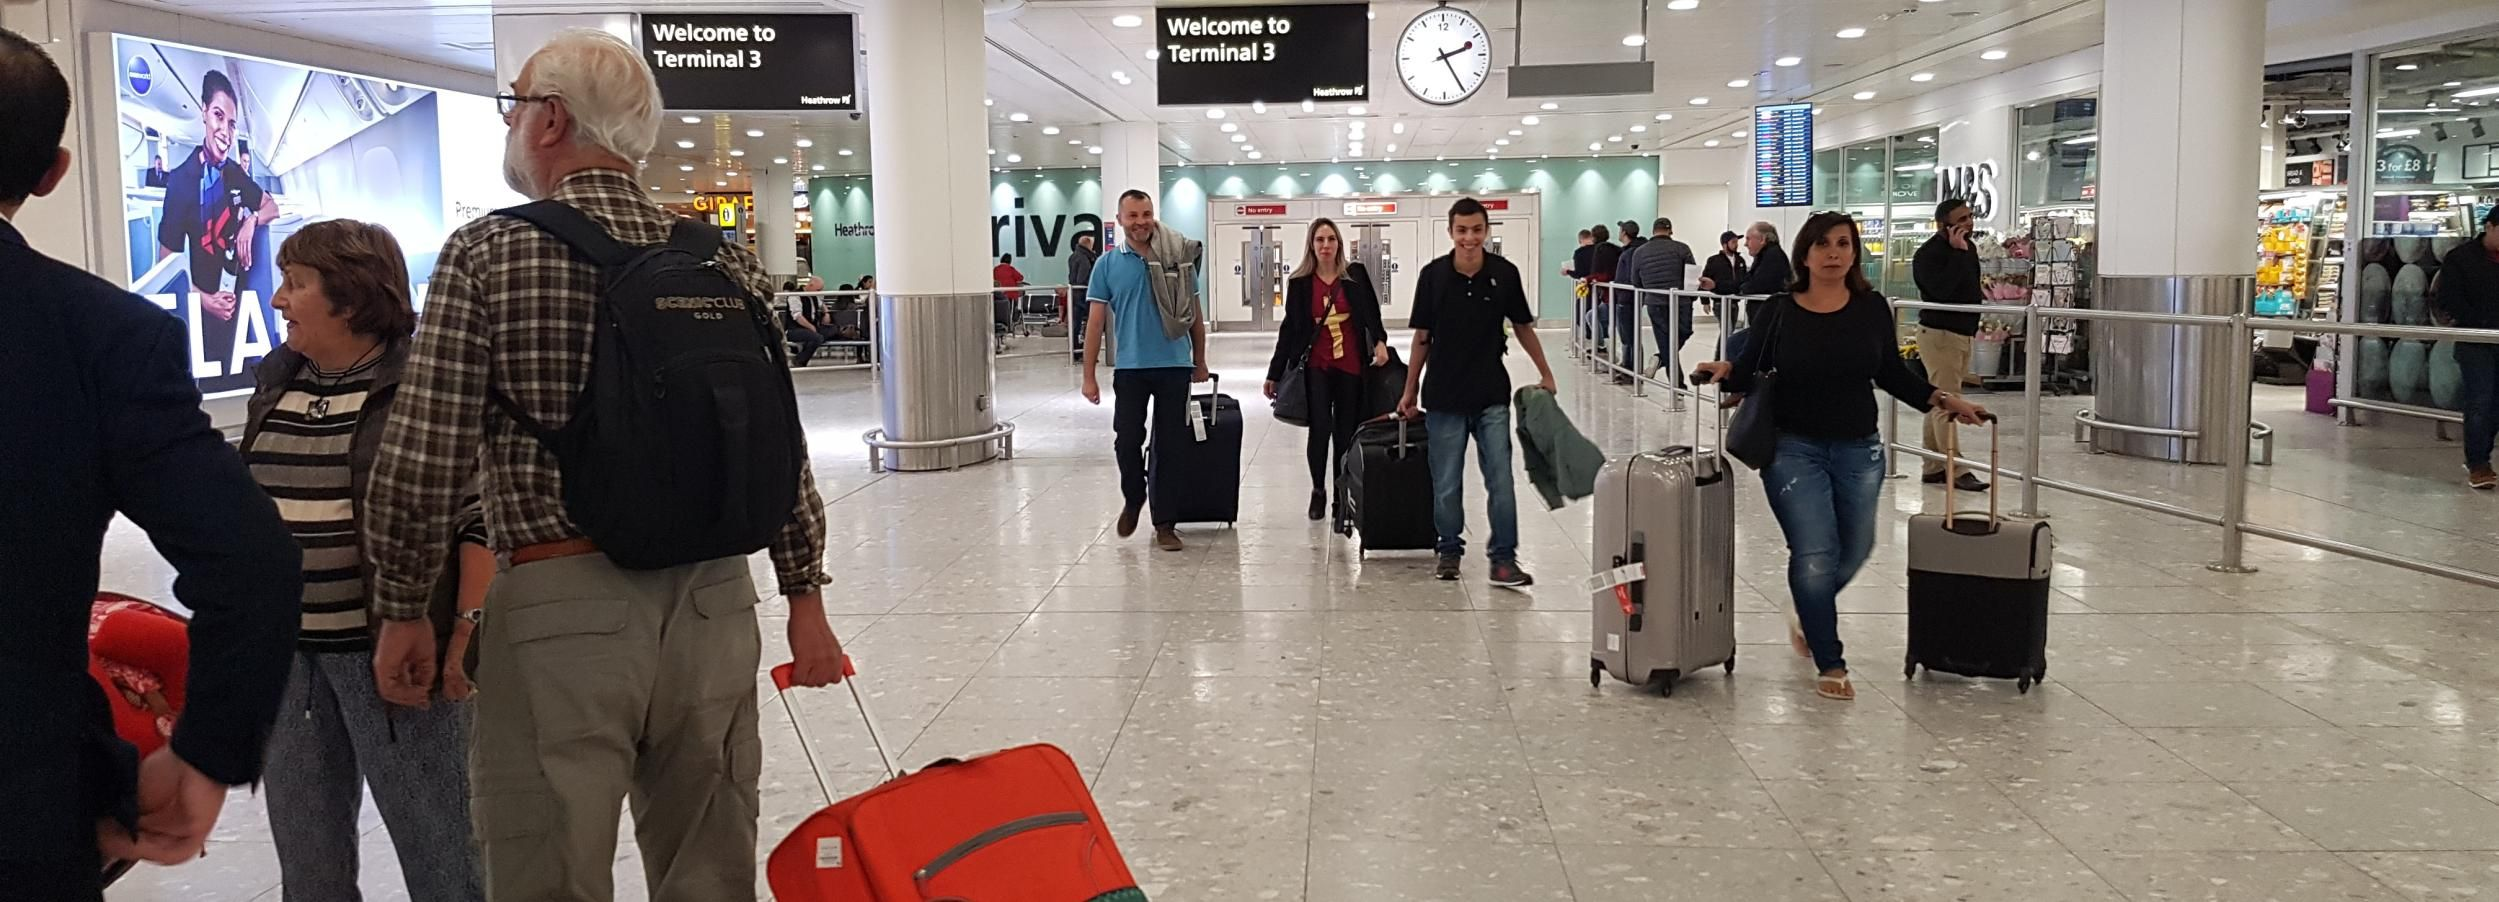 Londres: Transferência compartilhada do aeroporto de Heathrow para Londres